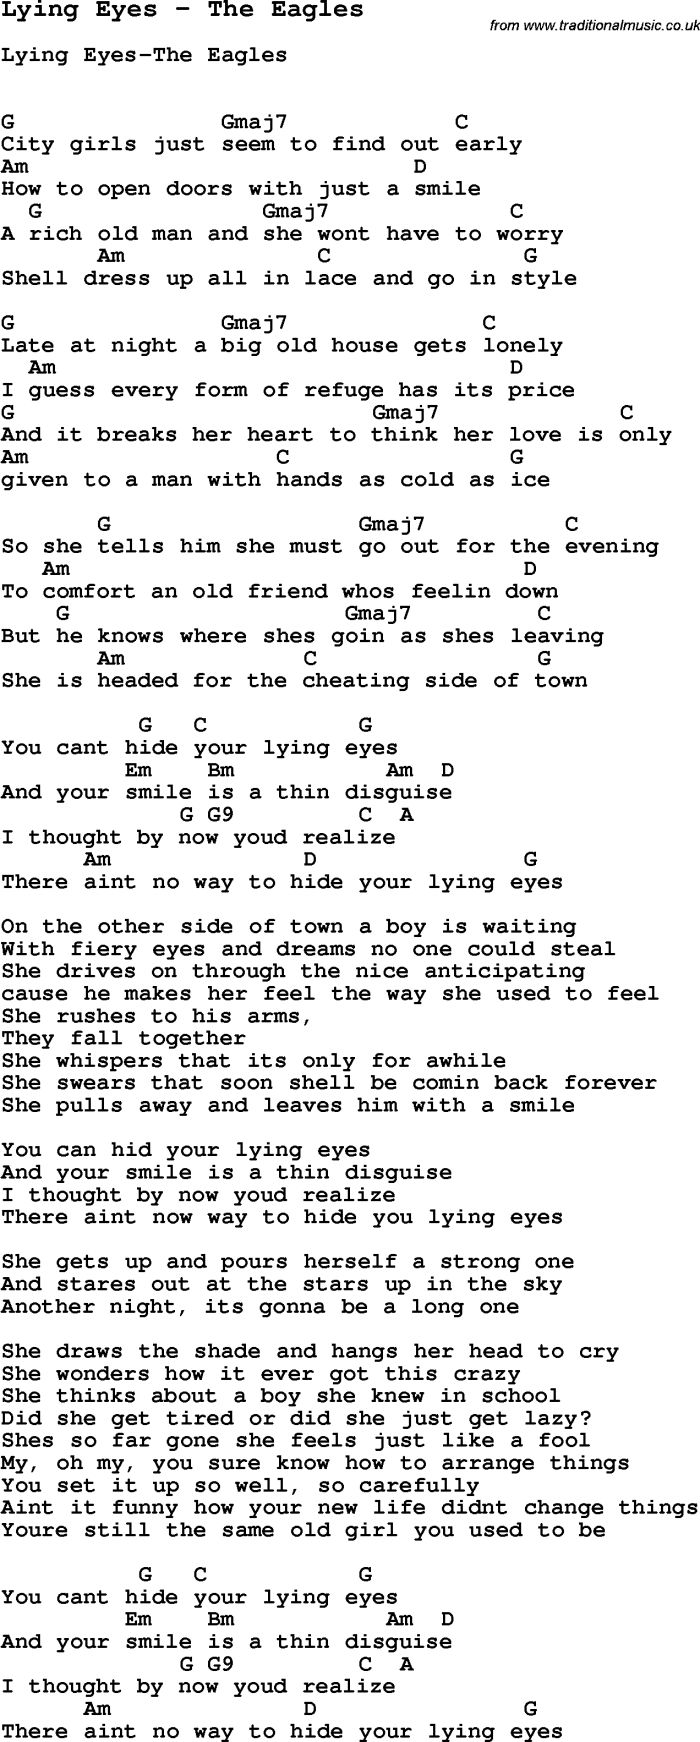 744 best music images on pinterest music guitar chord chart and a tribute to these lyin eyes as the music world ukulele songsukulele chordslyrics hexwebz Images